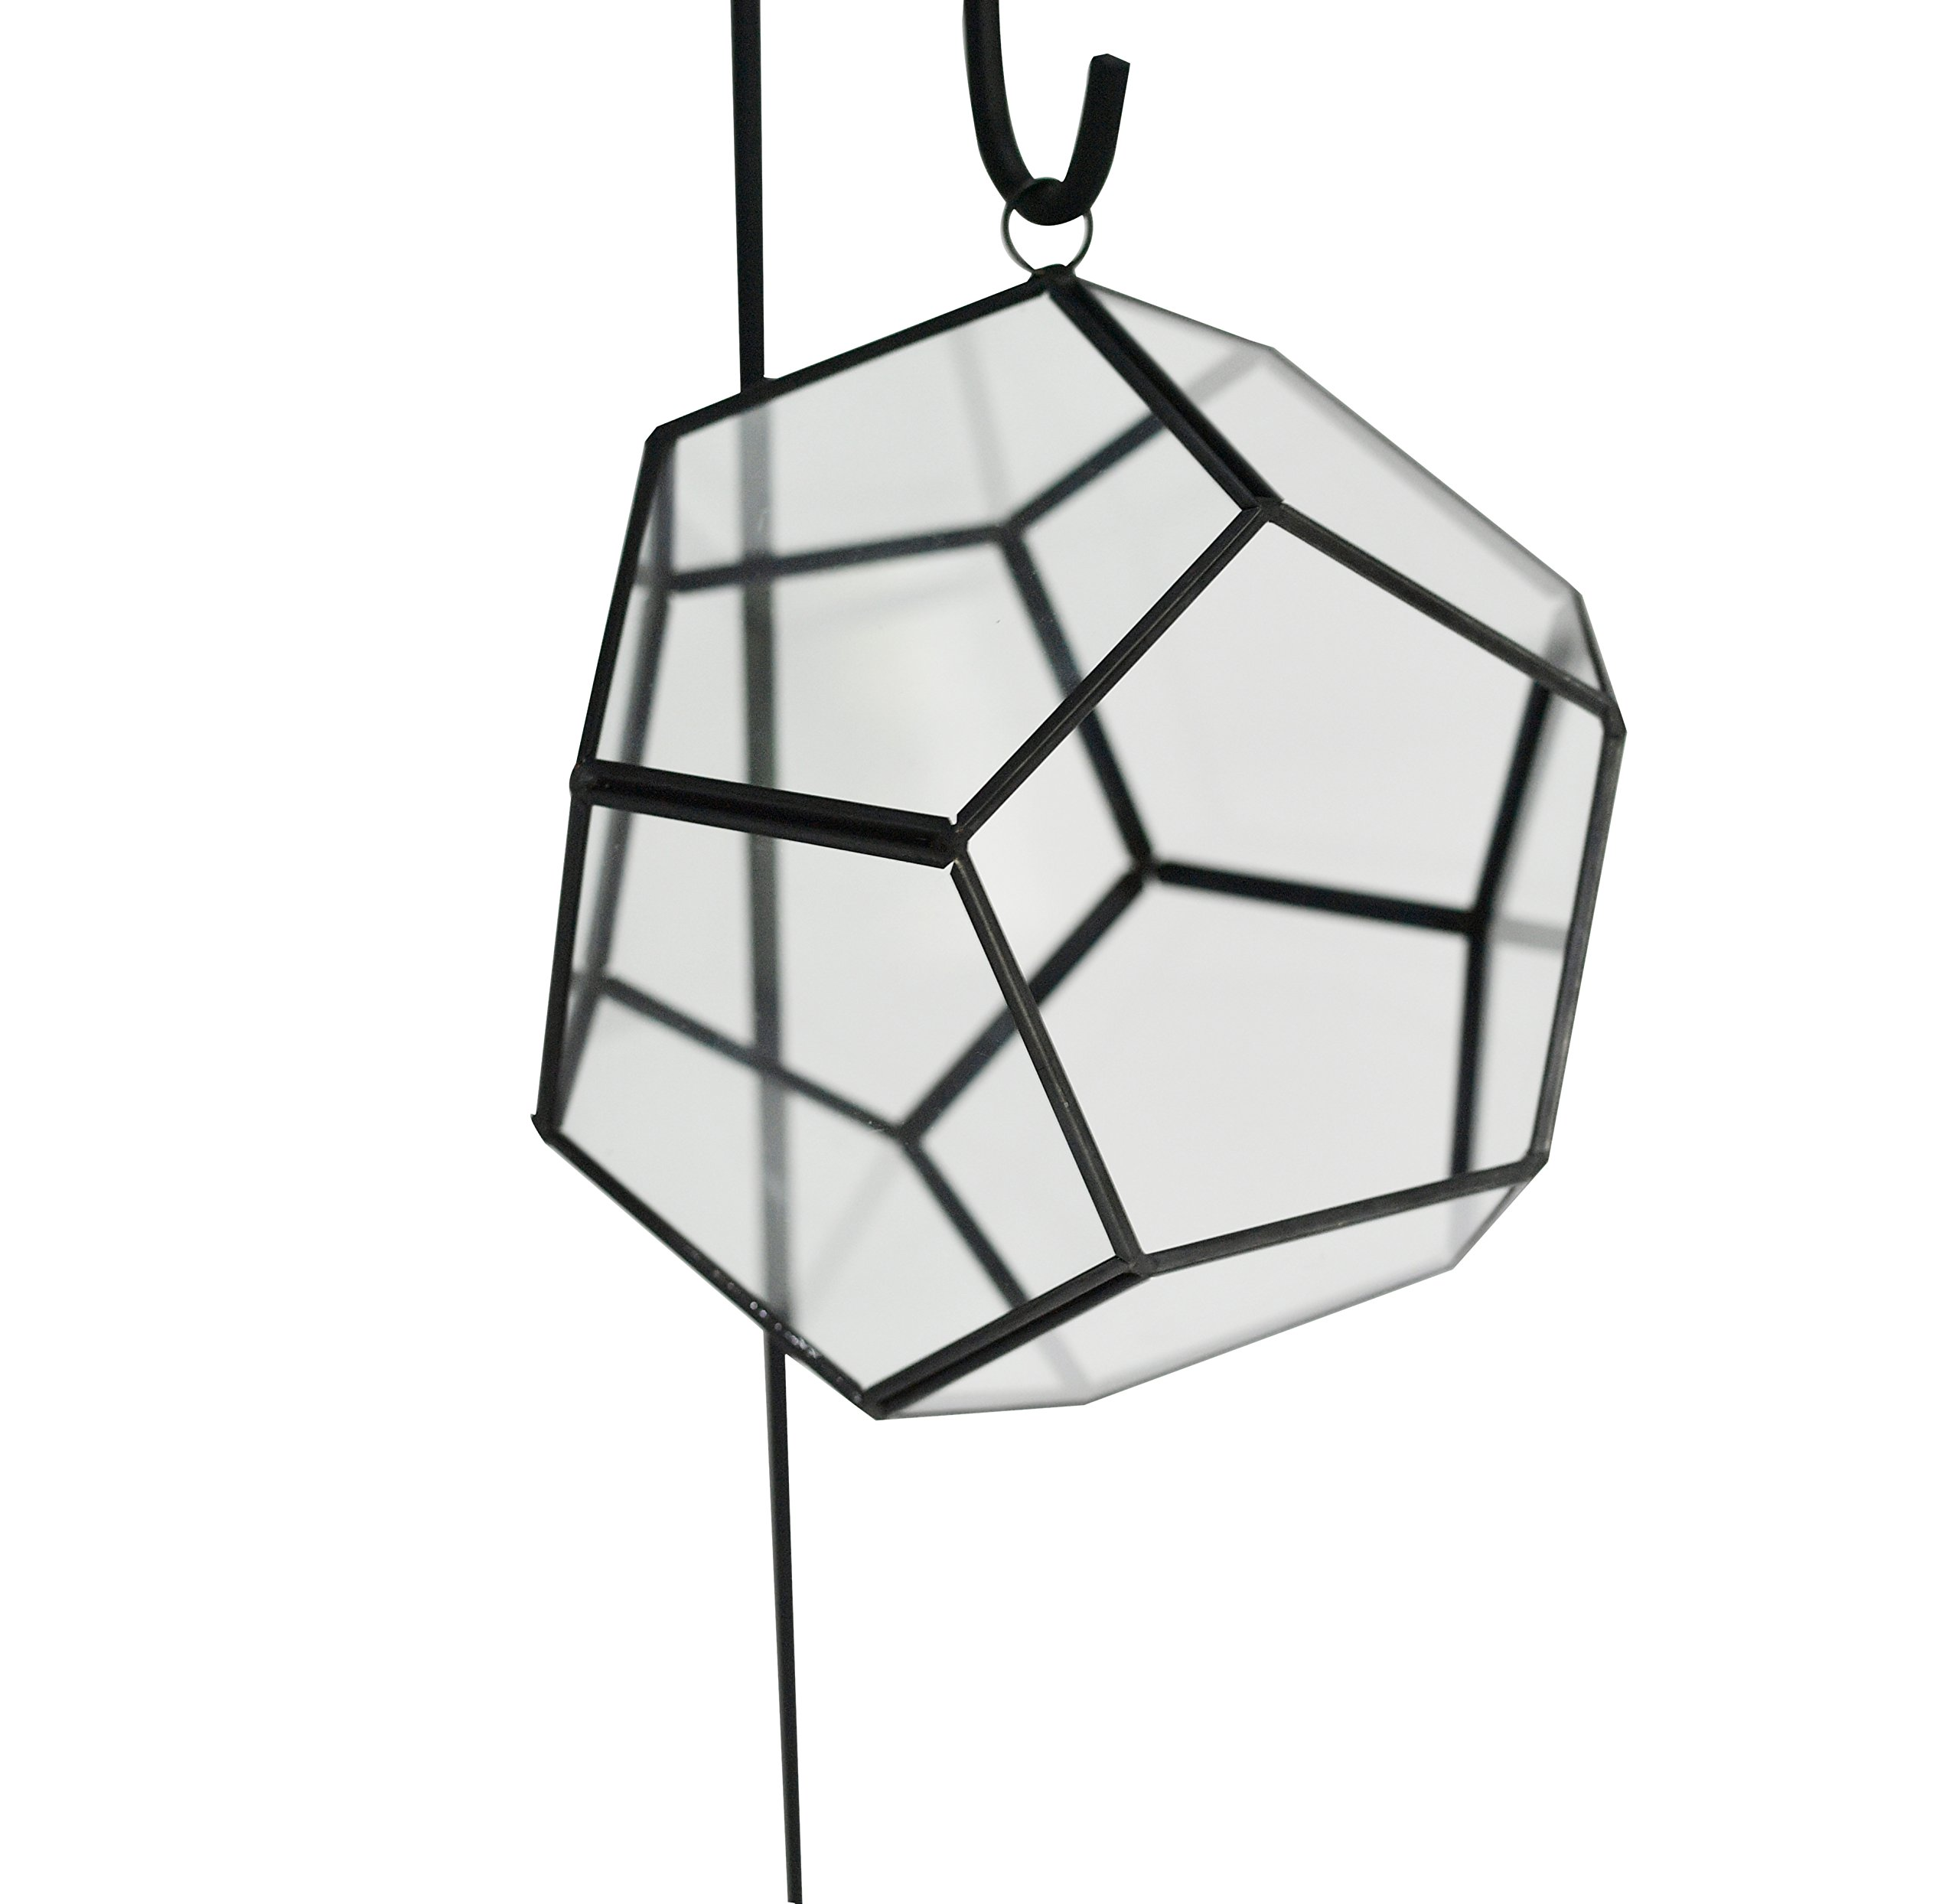 Geometric Globe Shape Glass Prism Terrarium with Black Rim / Air Plant Display Case / Tea Light Candle Holder (display hanger not included) - by Home-X